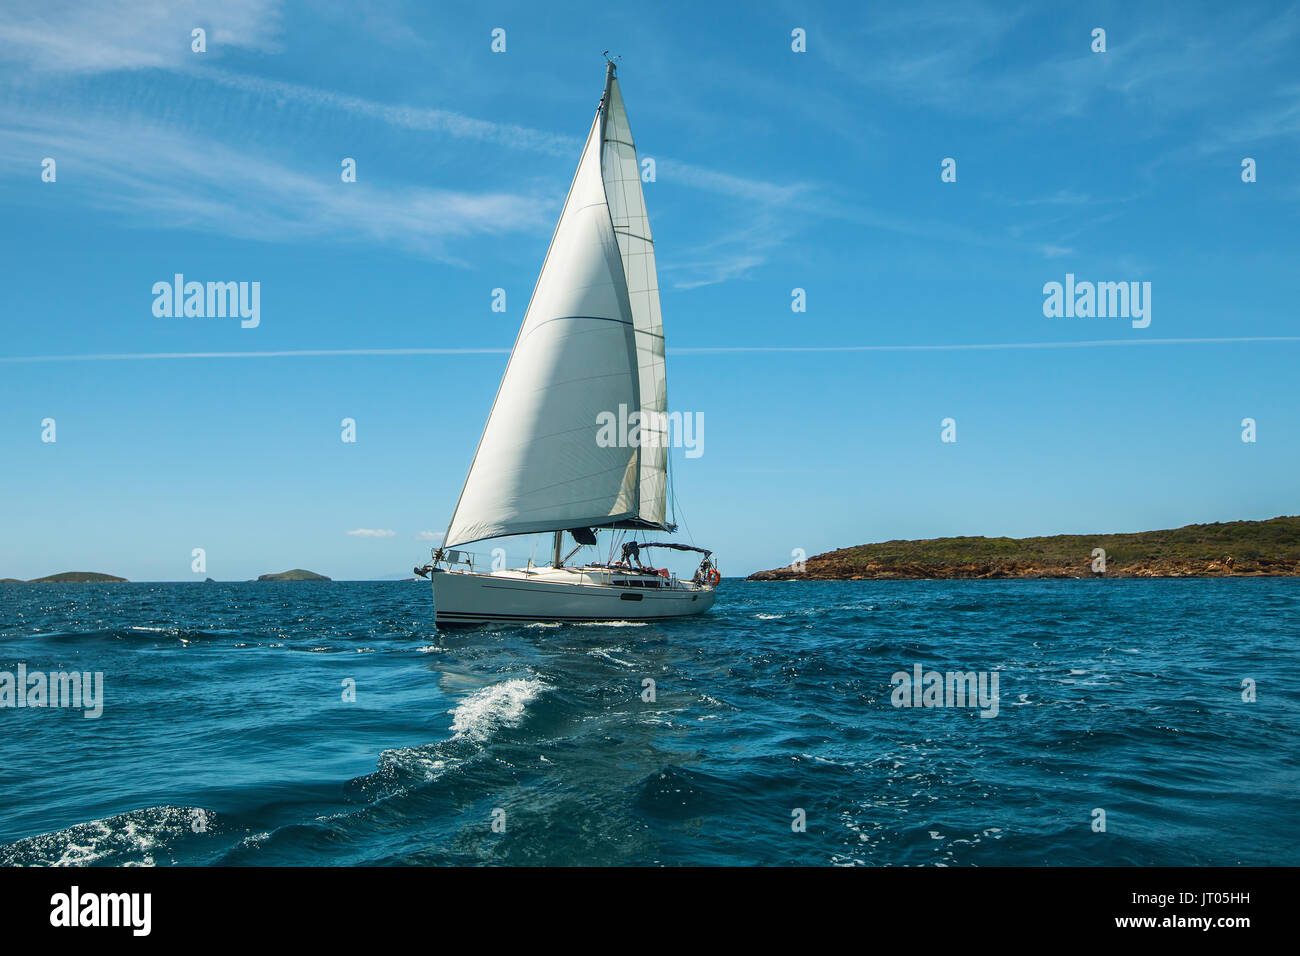 Luxery yacht Sailing on the waves in the Aegean sea. - Stock Image